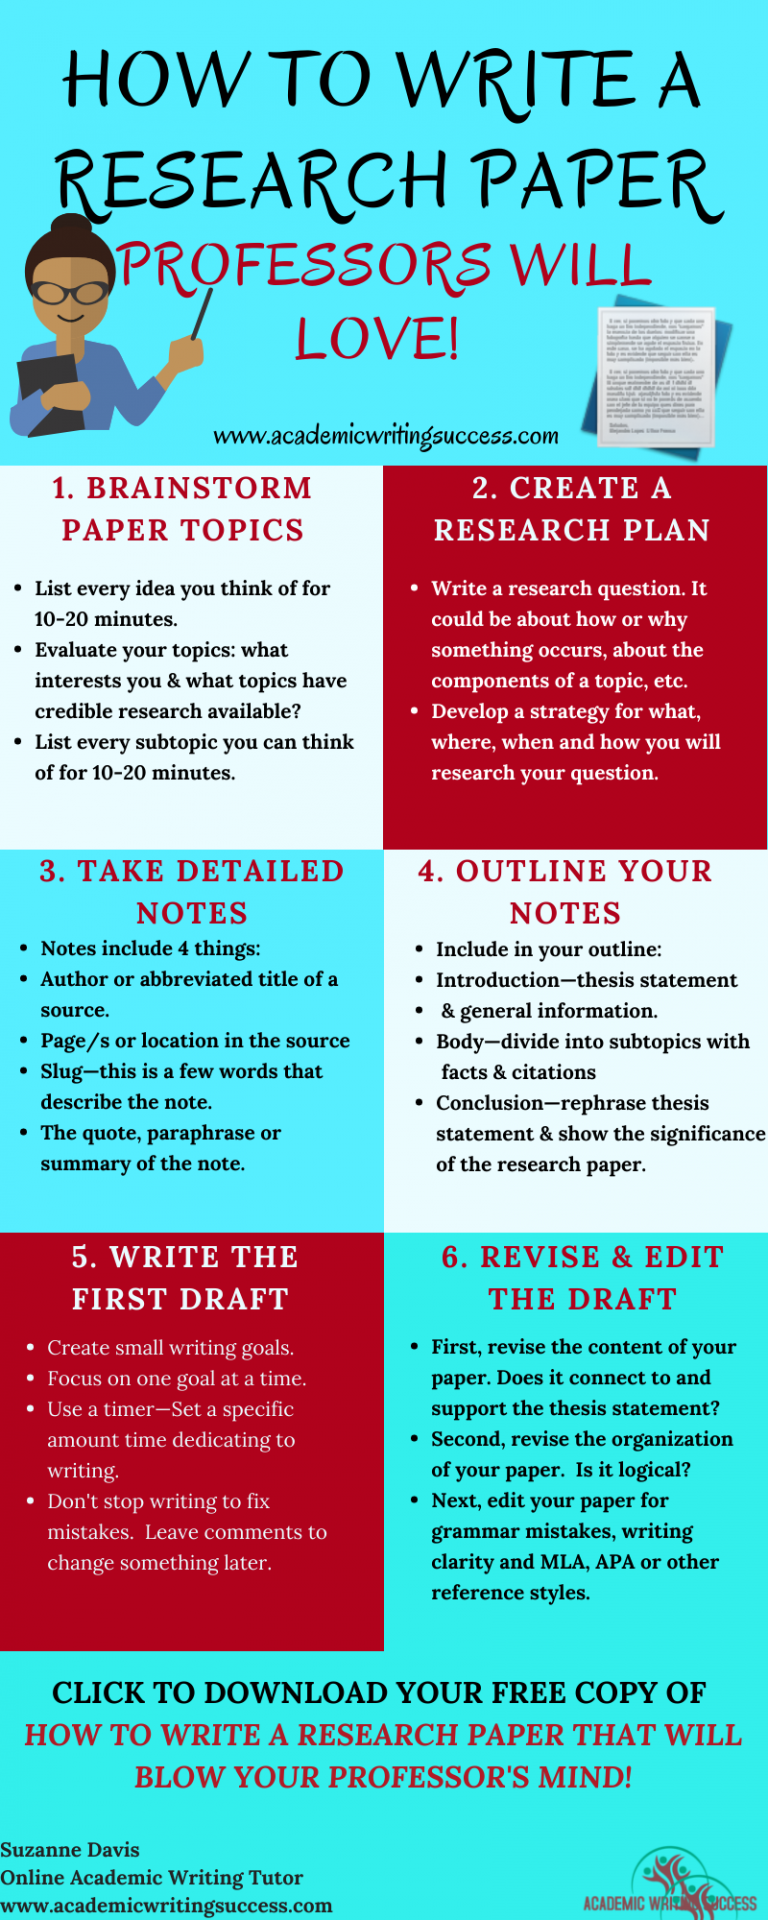 How To Write A Research Paper Professors Will Love Academic Writing Success In 2020 Essay Writing Skills College Writing Essay Writing Tips